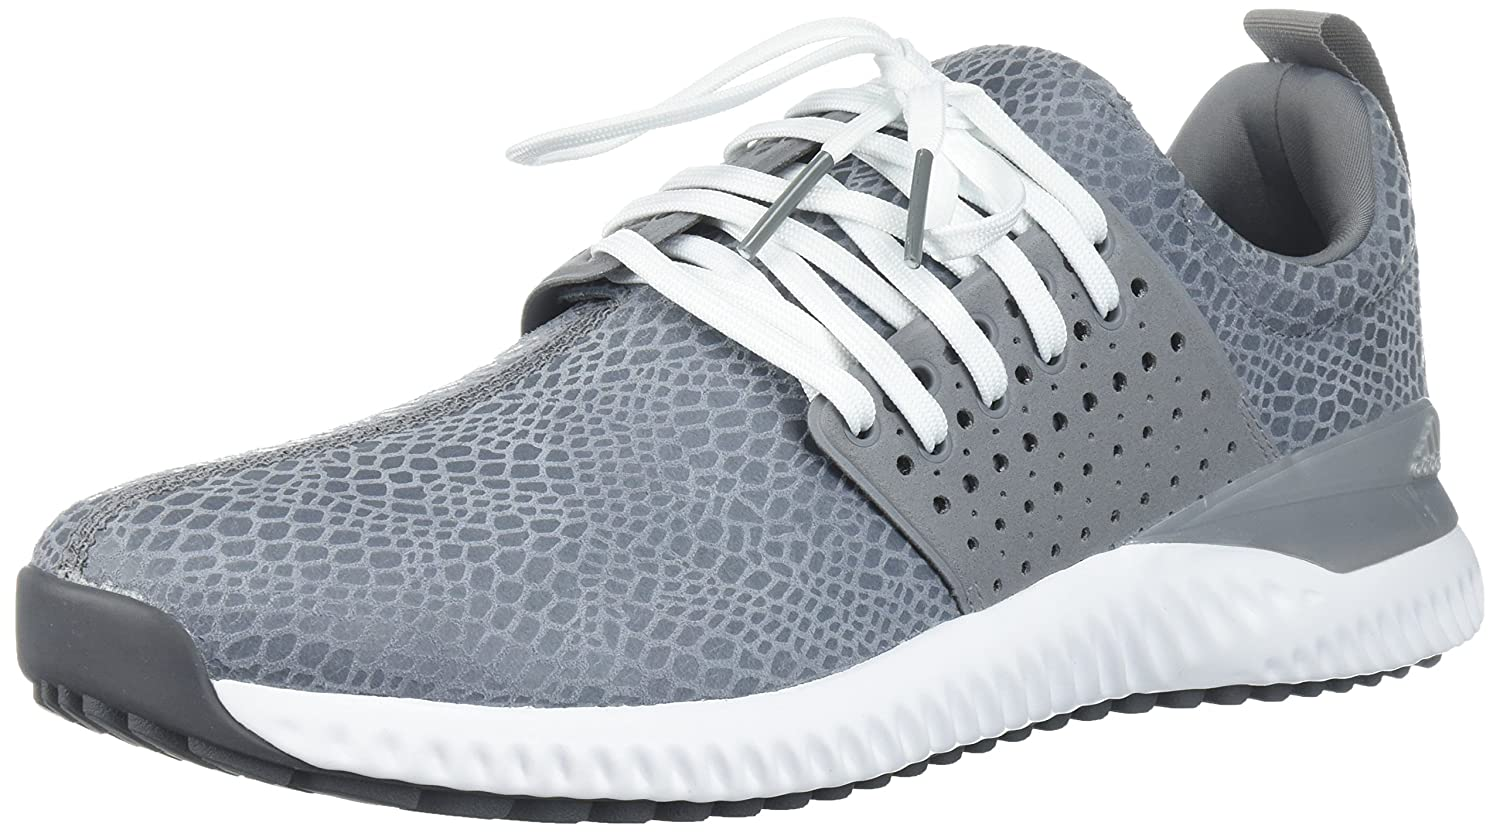 adidas メンズ adicross bounce B072C4TM6P 7 D(M) US|Grey Four Grey Three Ftwr White Grey Four Grey Three Ftwr White 7 D(M) US